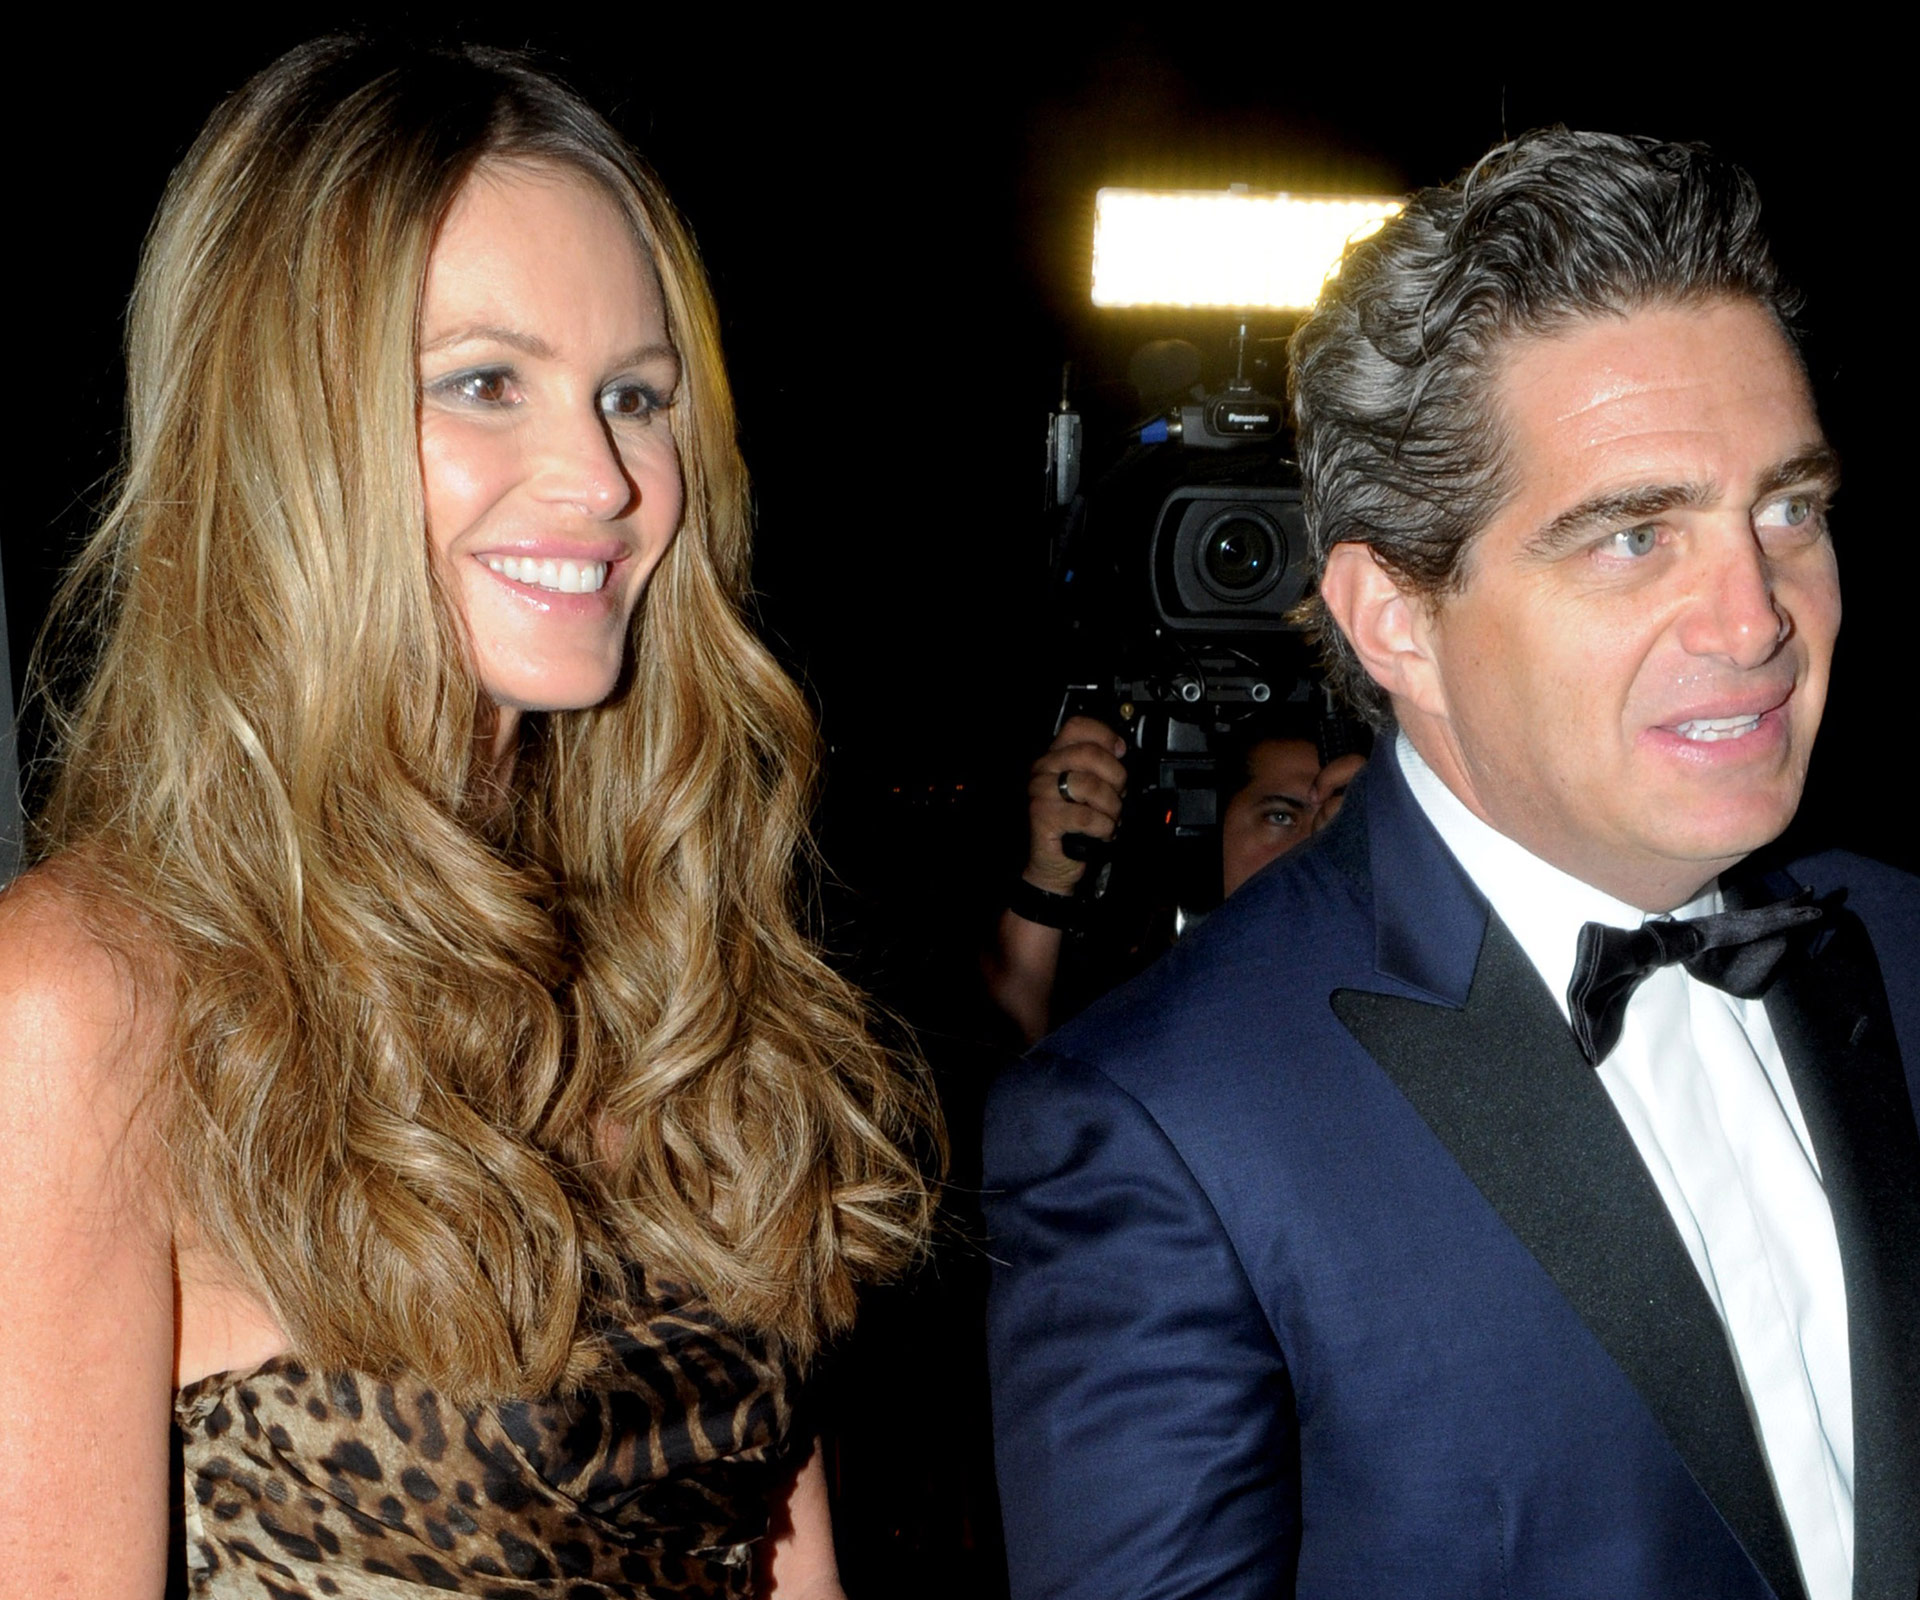 Elle Macpherson and husband Jeffrey Soffer have reportedly split